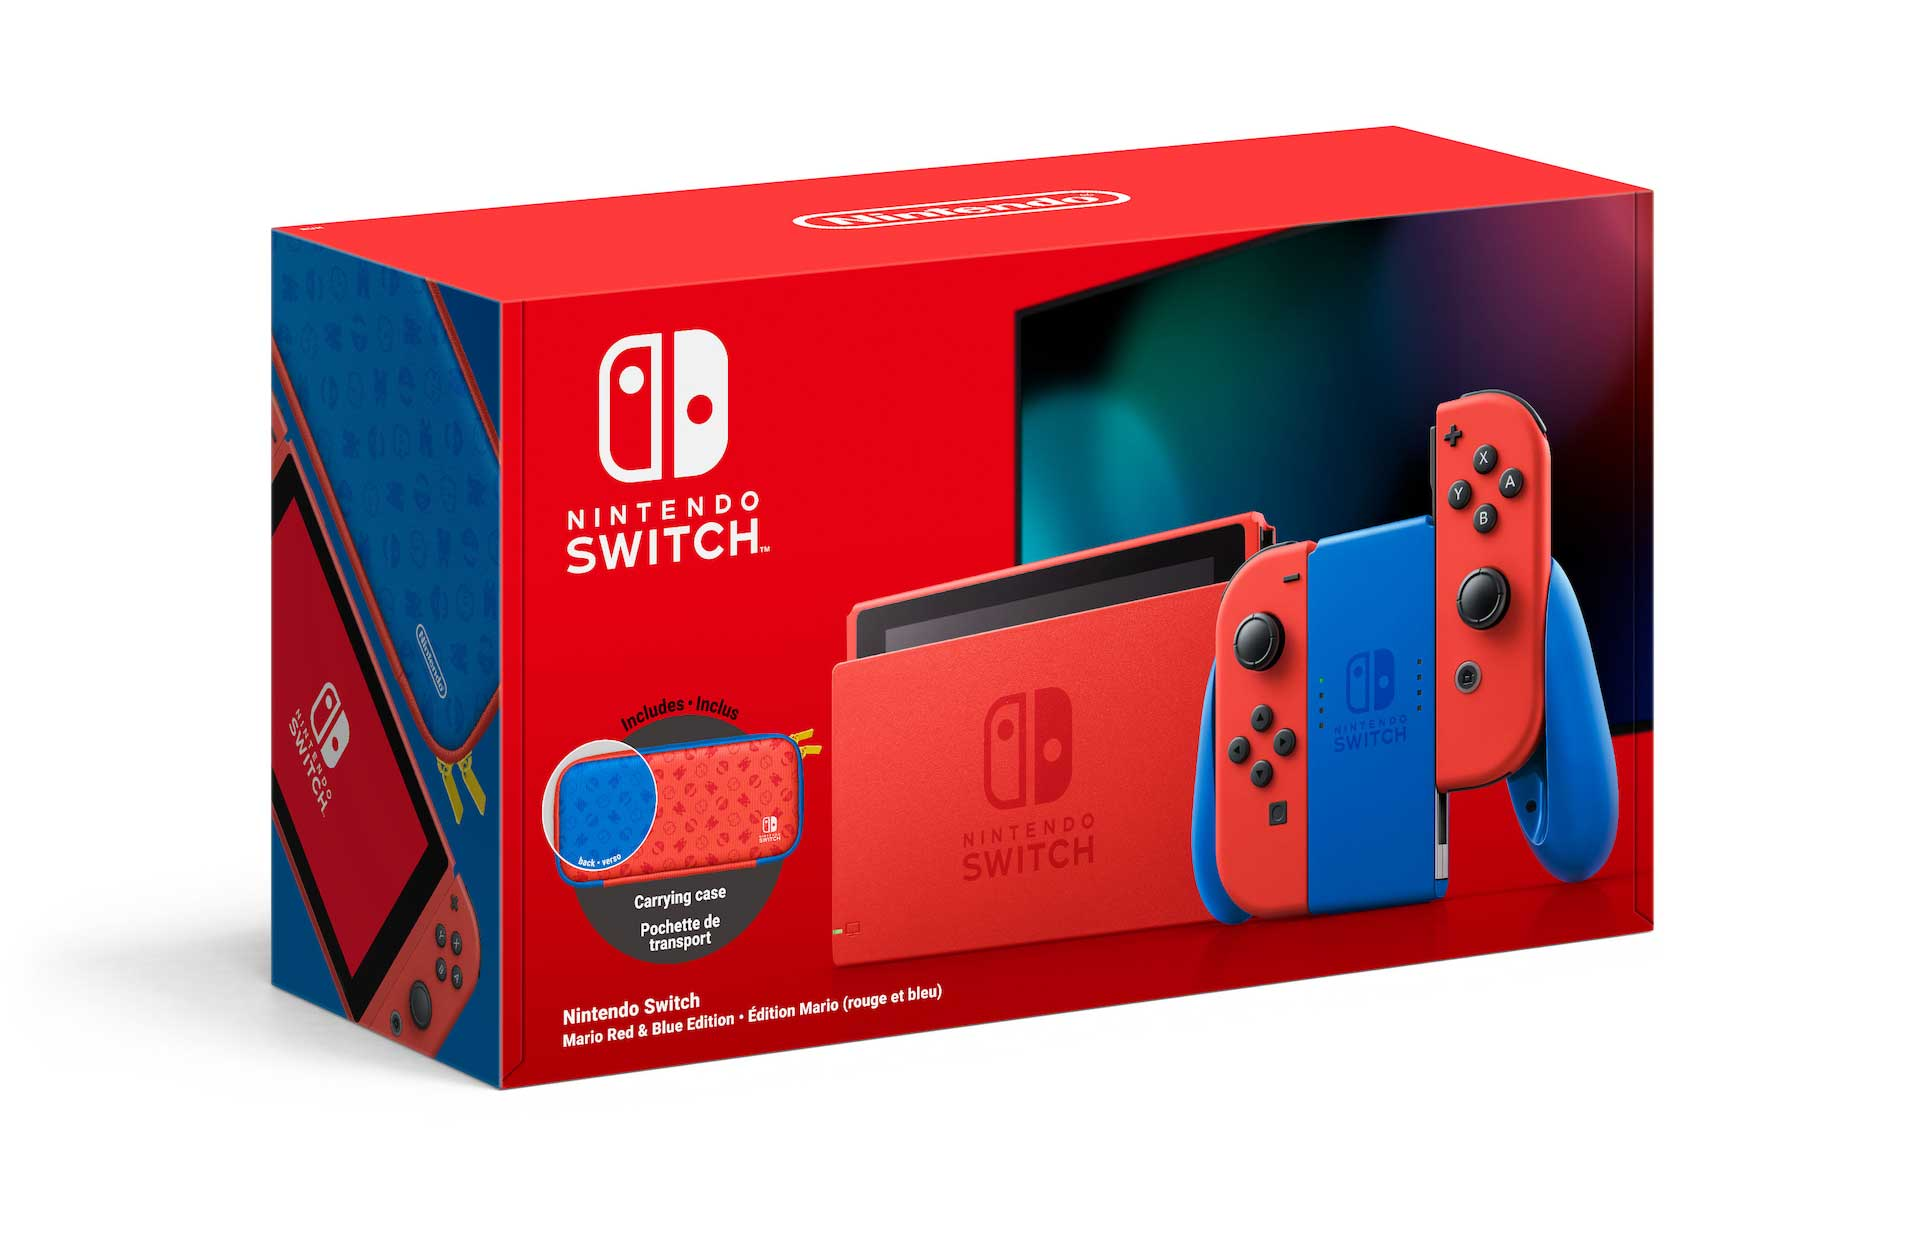 nintendo switch design 2020 red blue